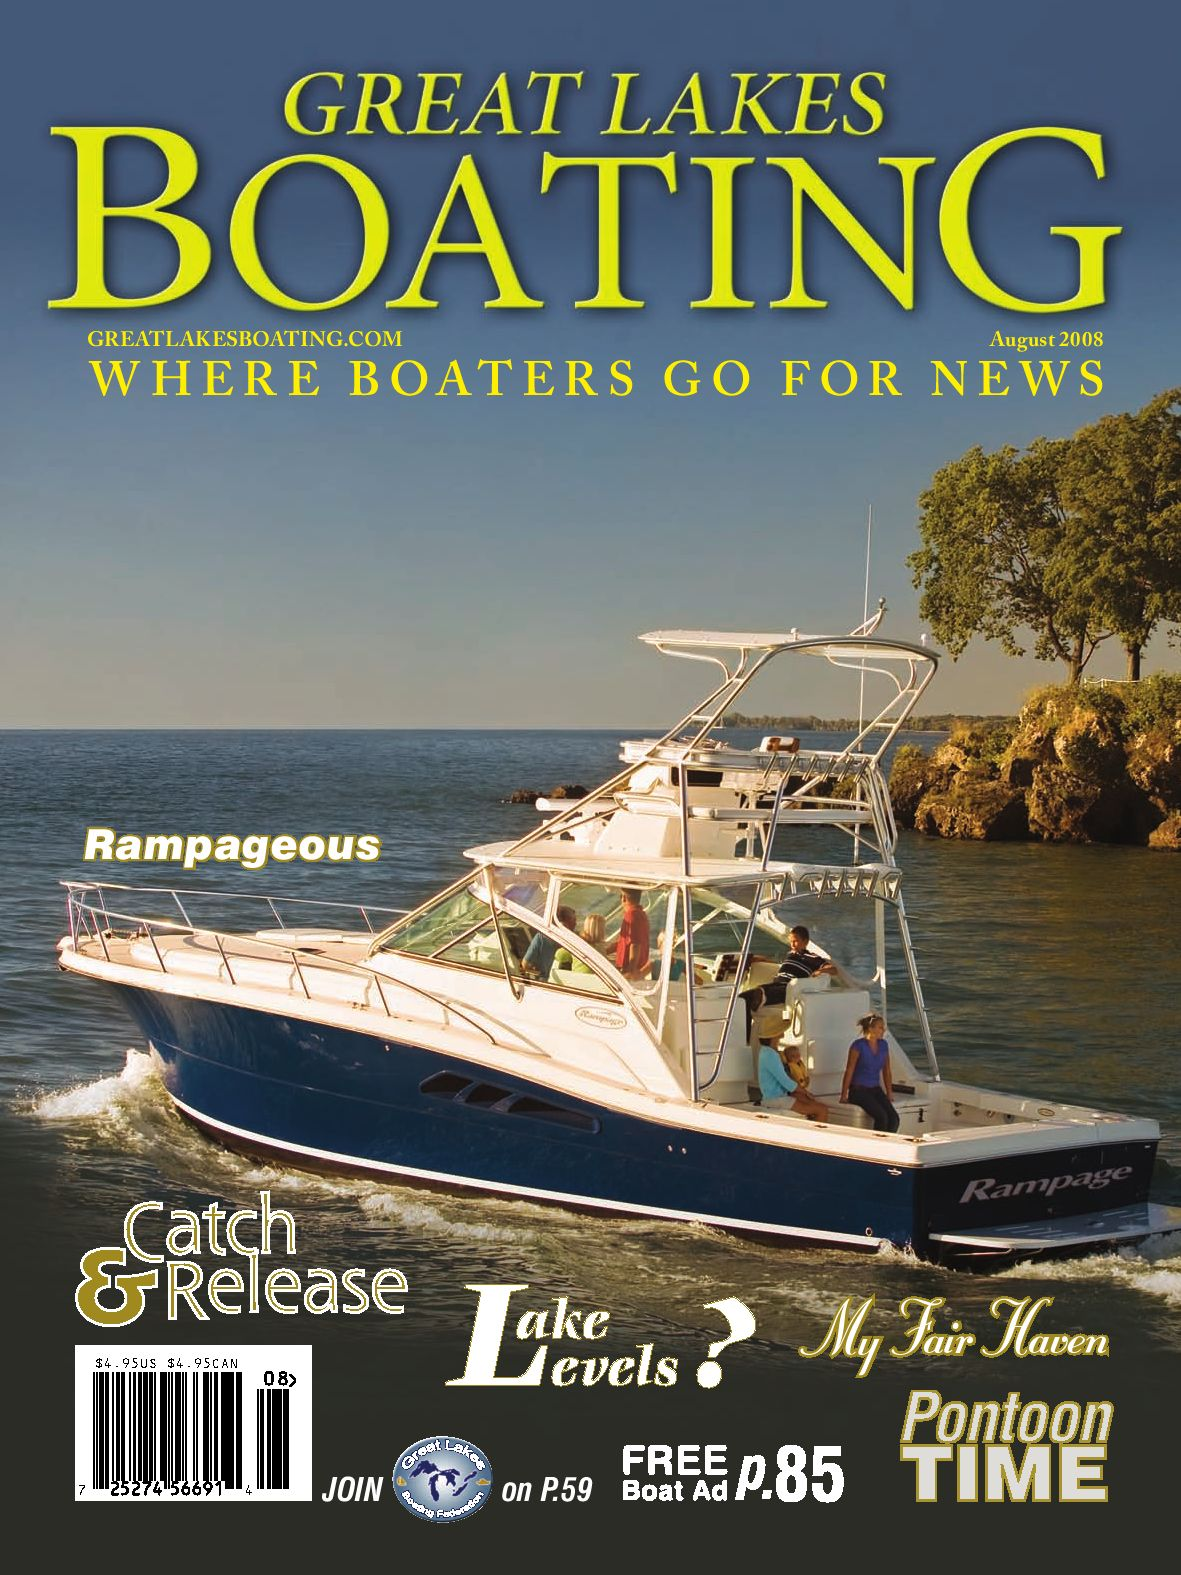 Great Lakes Boating August 2008 by GL Boating - issuu